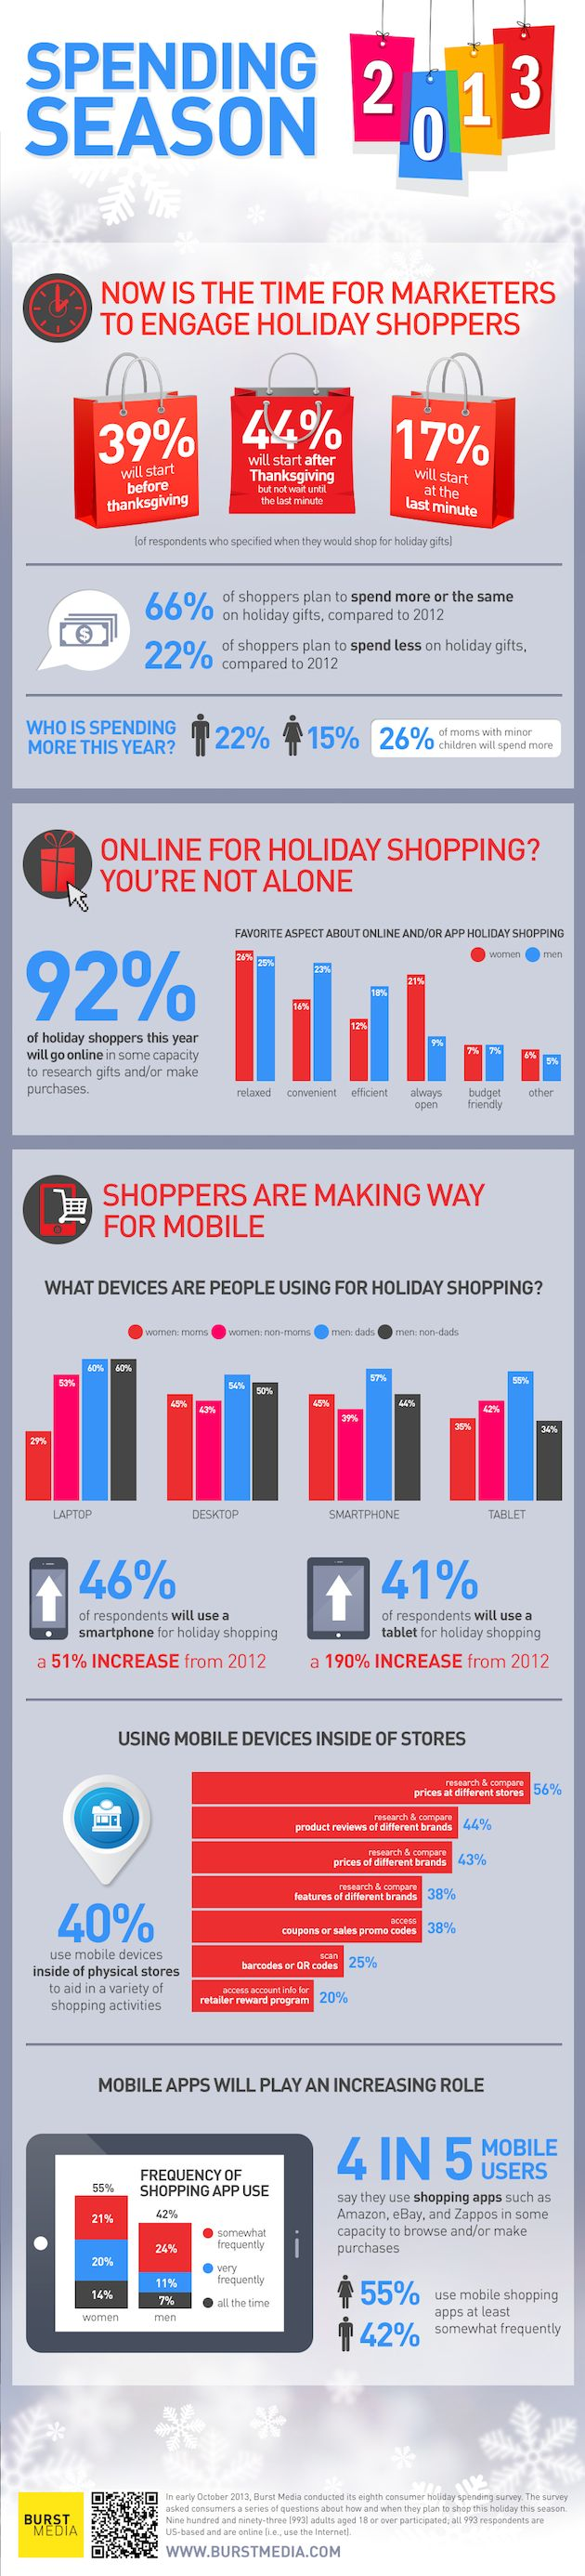 2013 holiday infographic by Burst Media